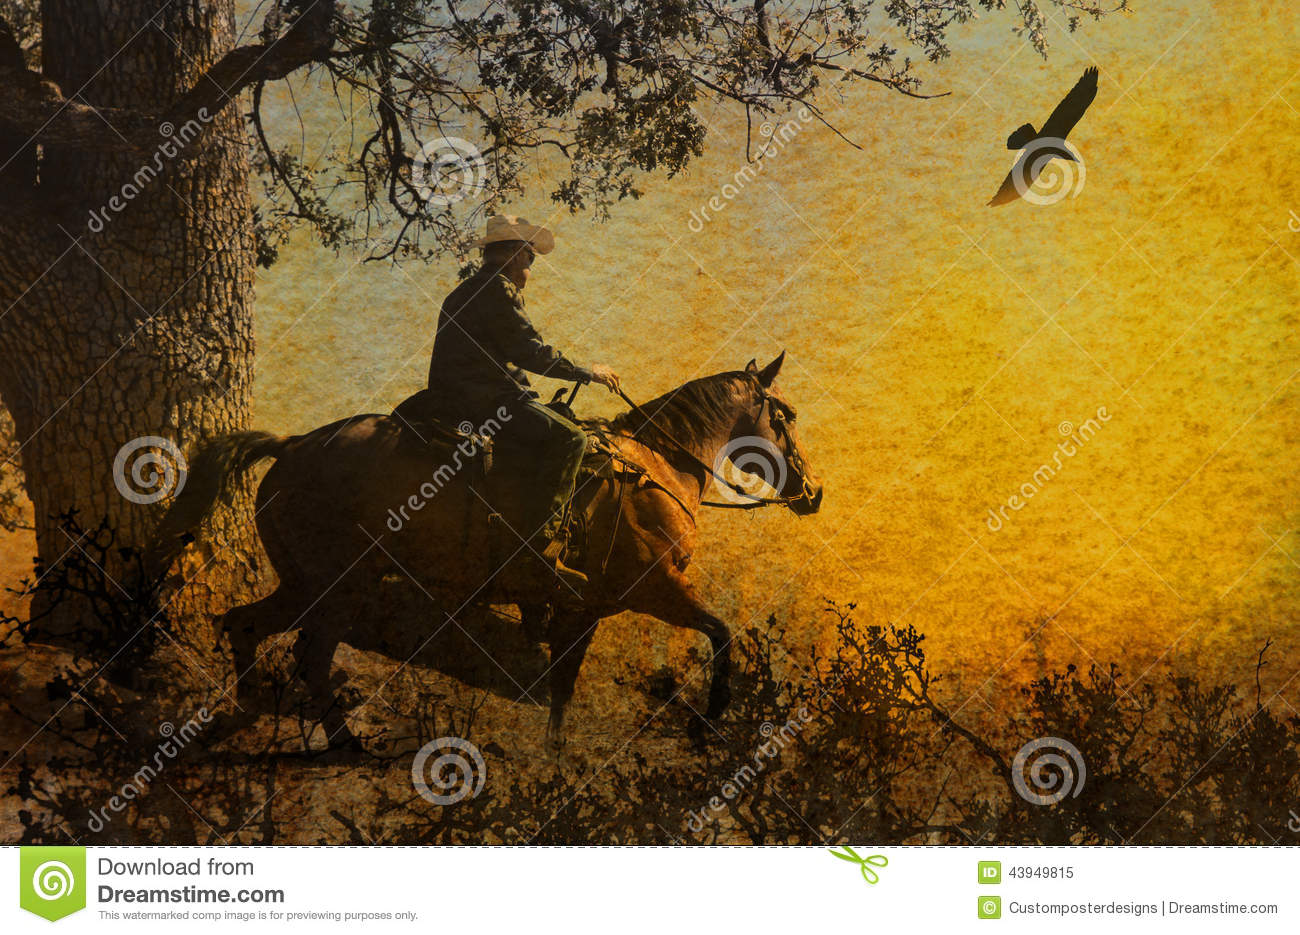 Download An Abstract Cowboy Riding In The Mountains With Trees, Crows Flying Above And A Textured Watercolor Yellow Background. Stock Image - Image of gothic, layers: 43949815